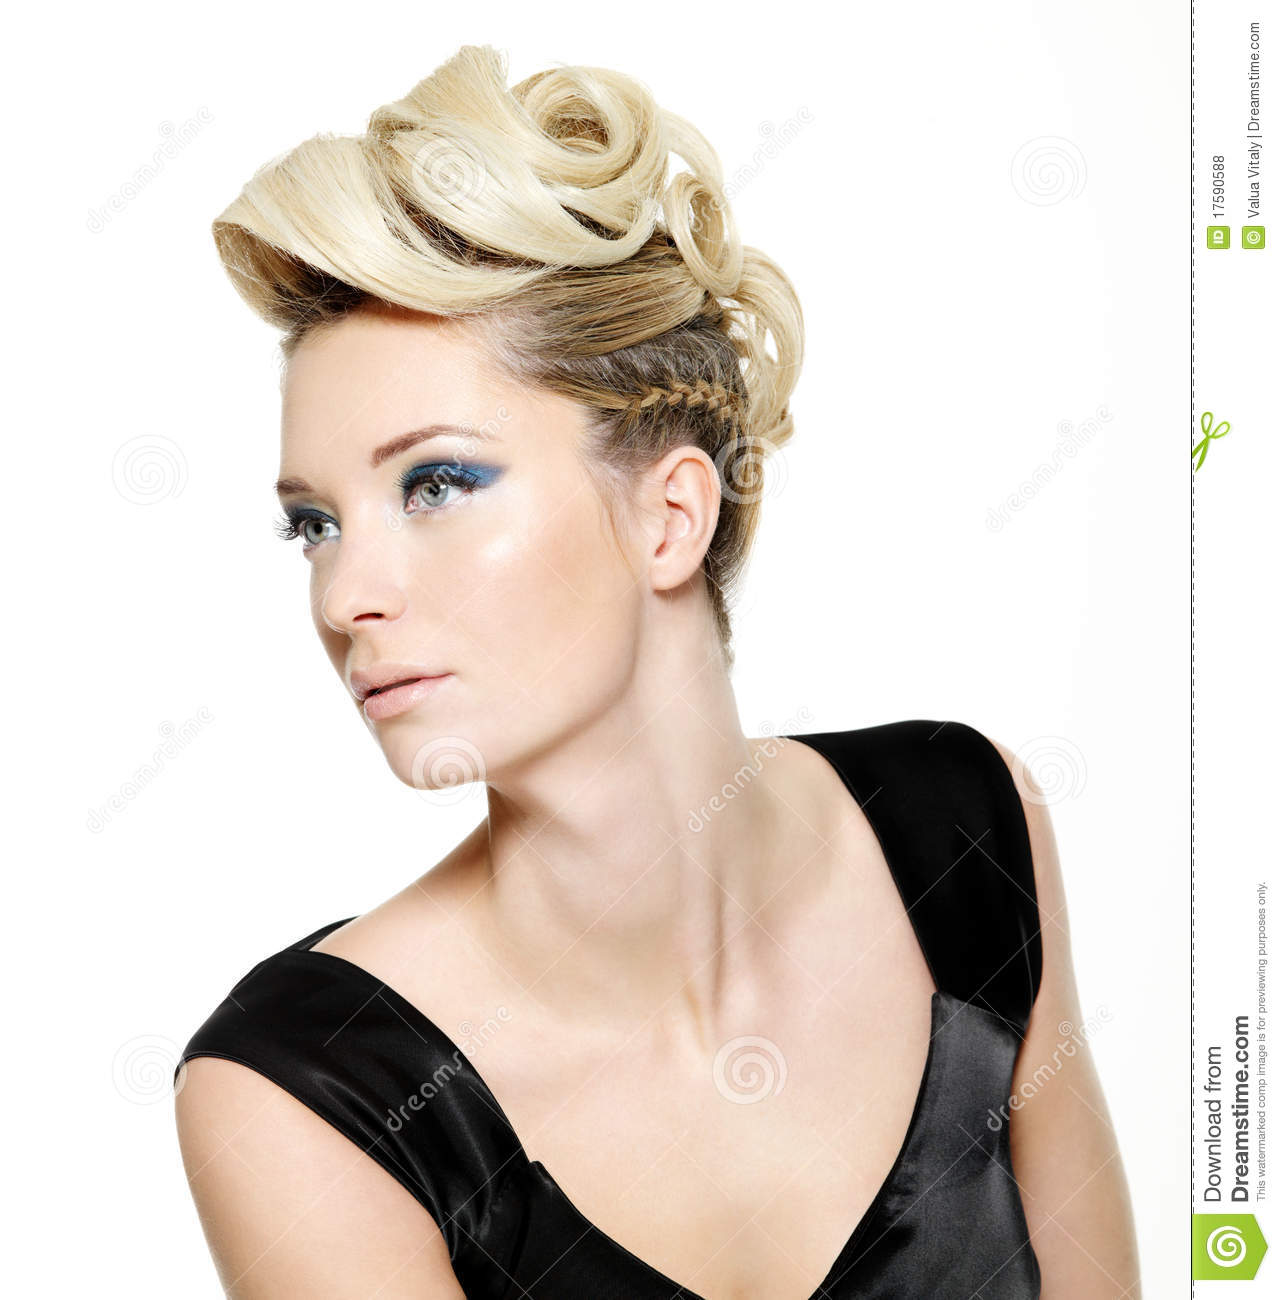 Beautiful Woman With Modern Hairstyle Stock Image - Image of ...